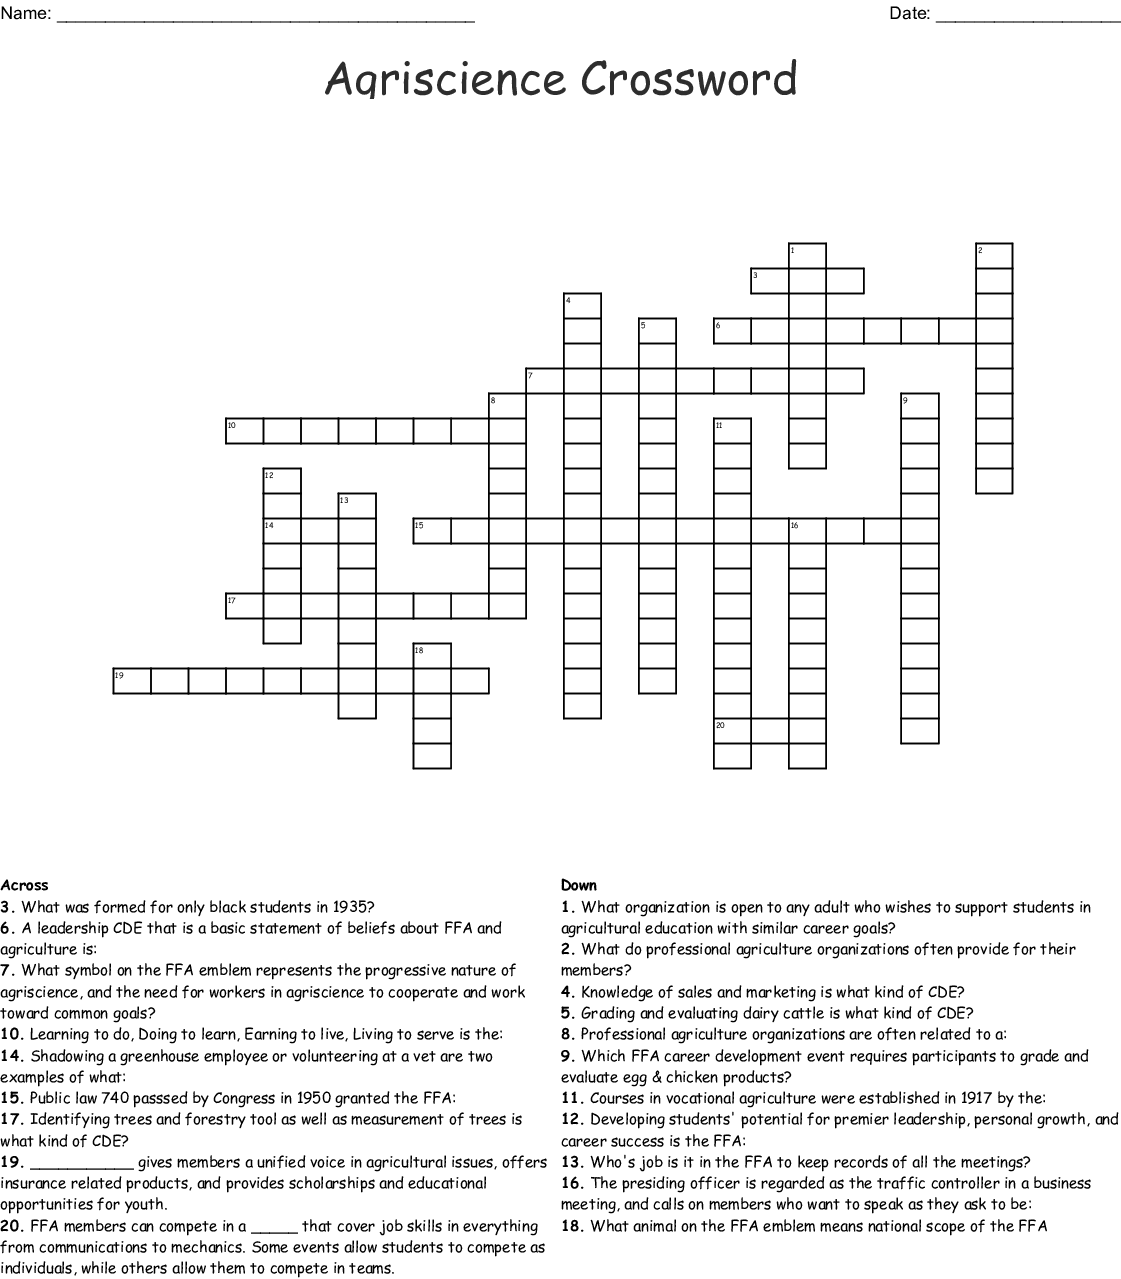 Young Nation Period Crossword